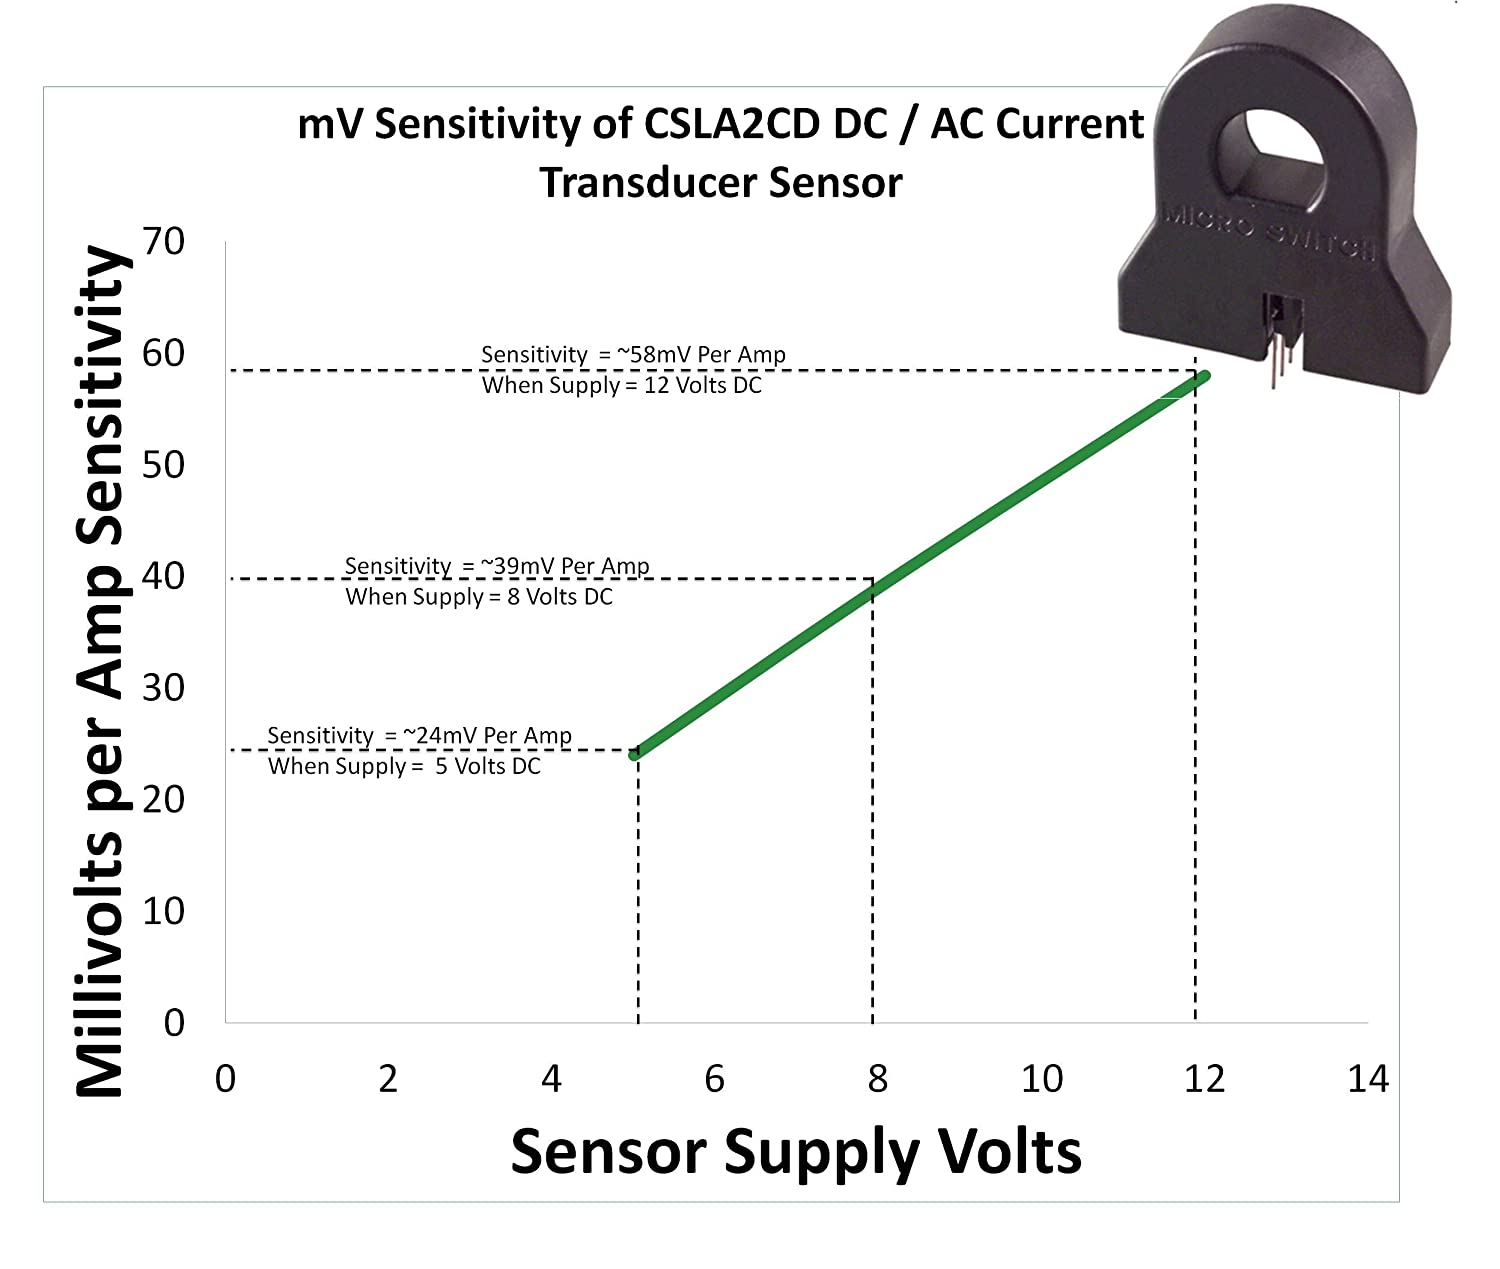 Csla2cd Honeywell Acdc 72 Amps Current Sensor Hall Effect Transducer Wiring With Mounting Screws Voltage Testers